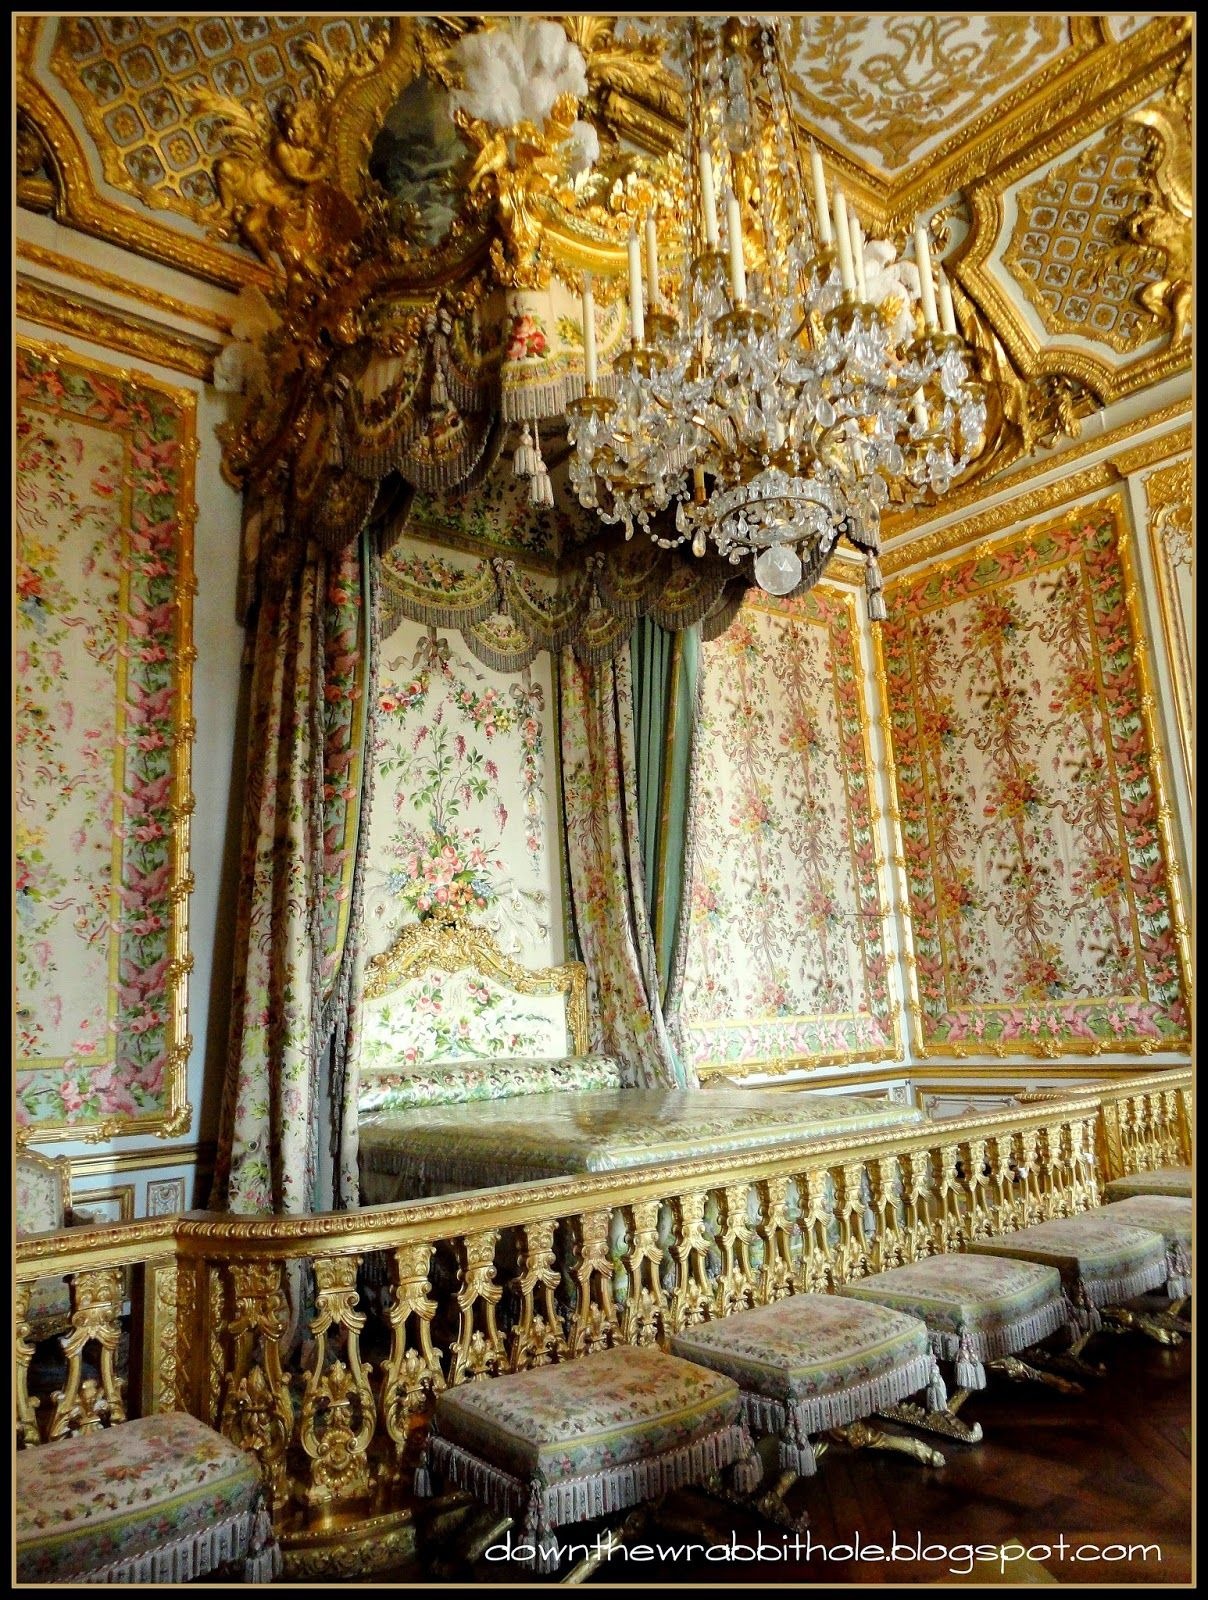 """Marie Antoinette's public bed in the palace of Versailles, Paris.  Find out more at """"Down the Wrabbit Hole - The Travel Bucket List"""". Click the image for the blog post."""